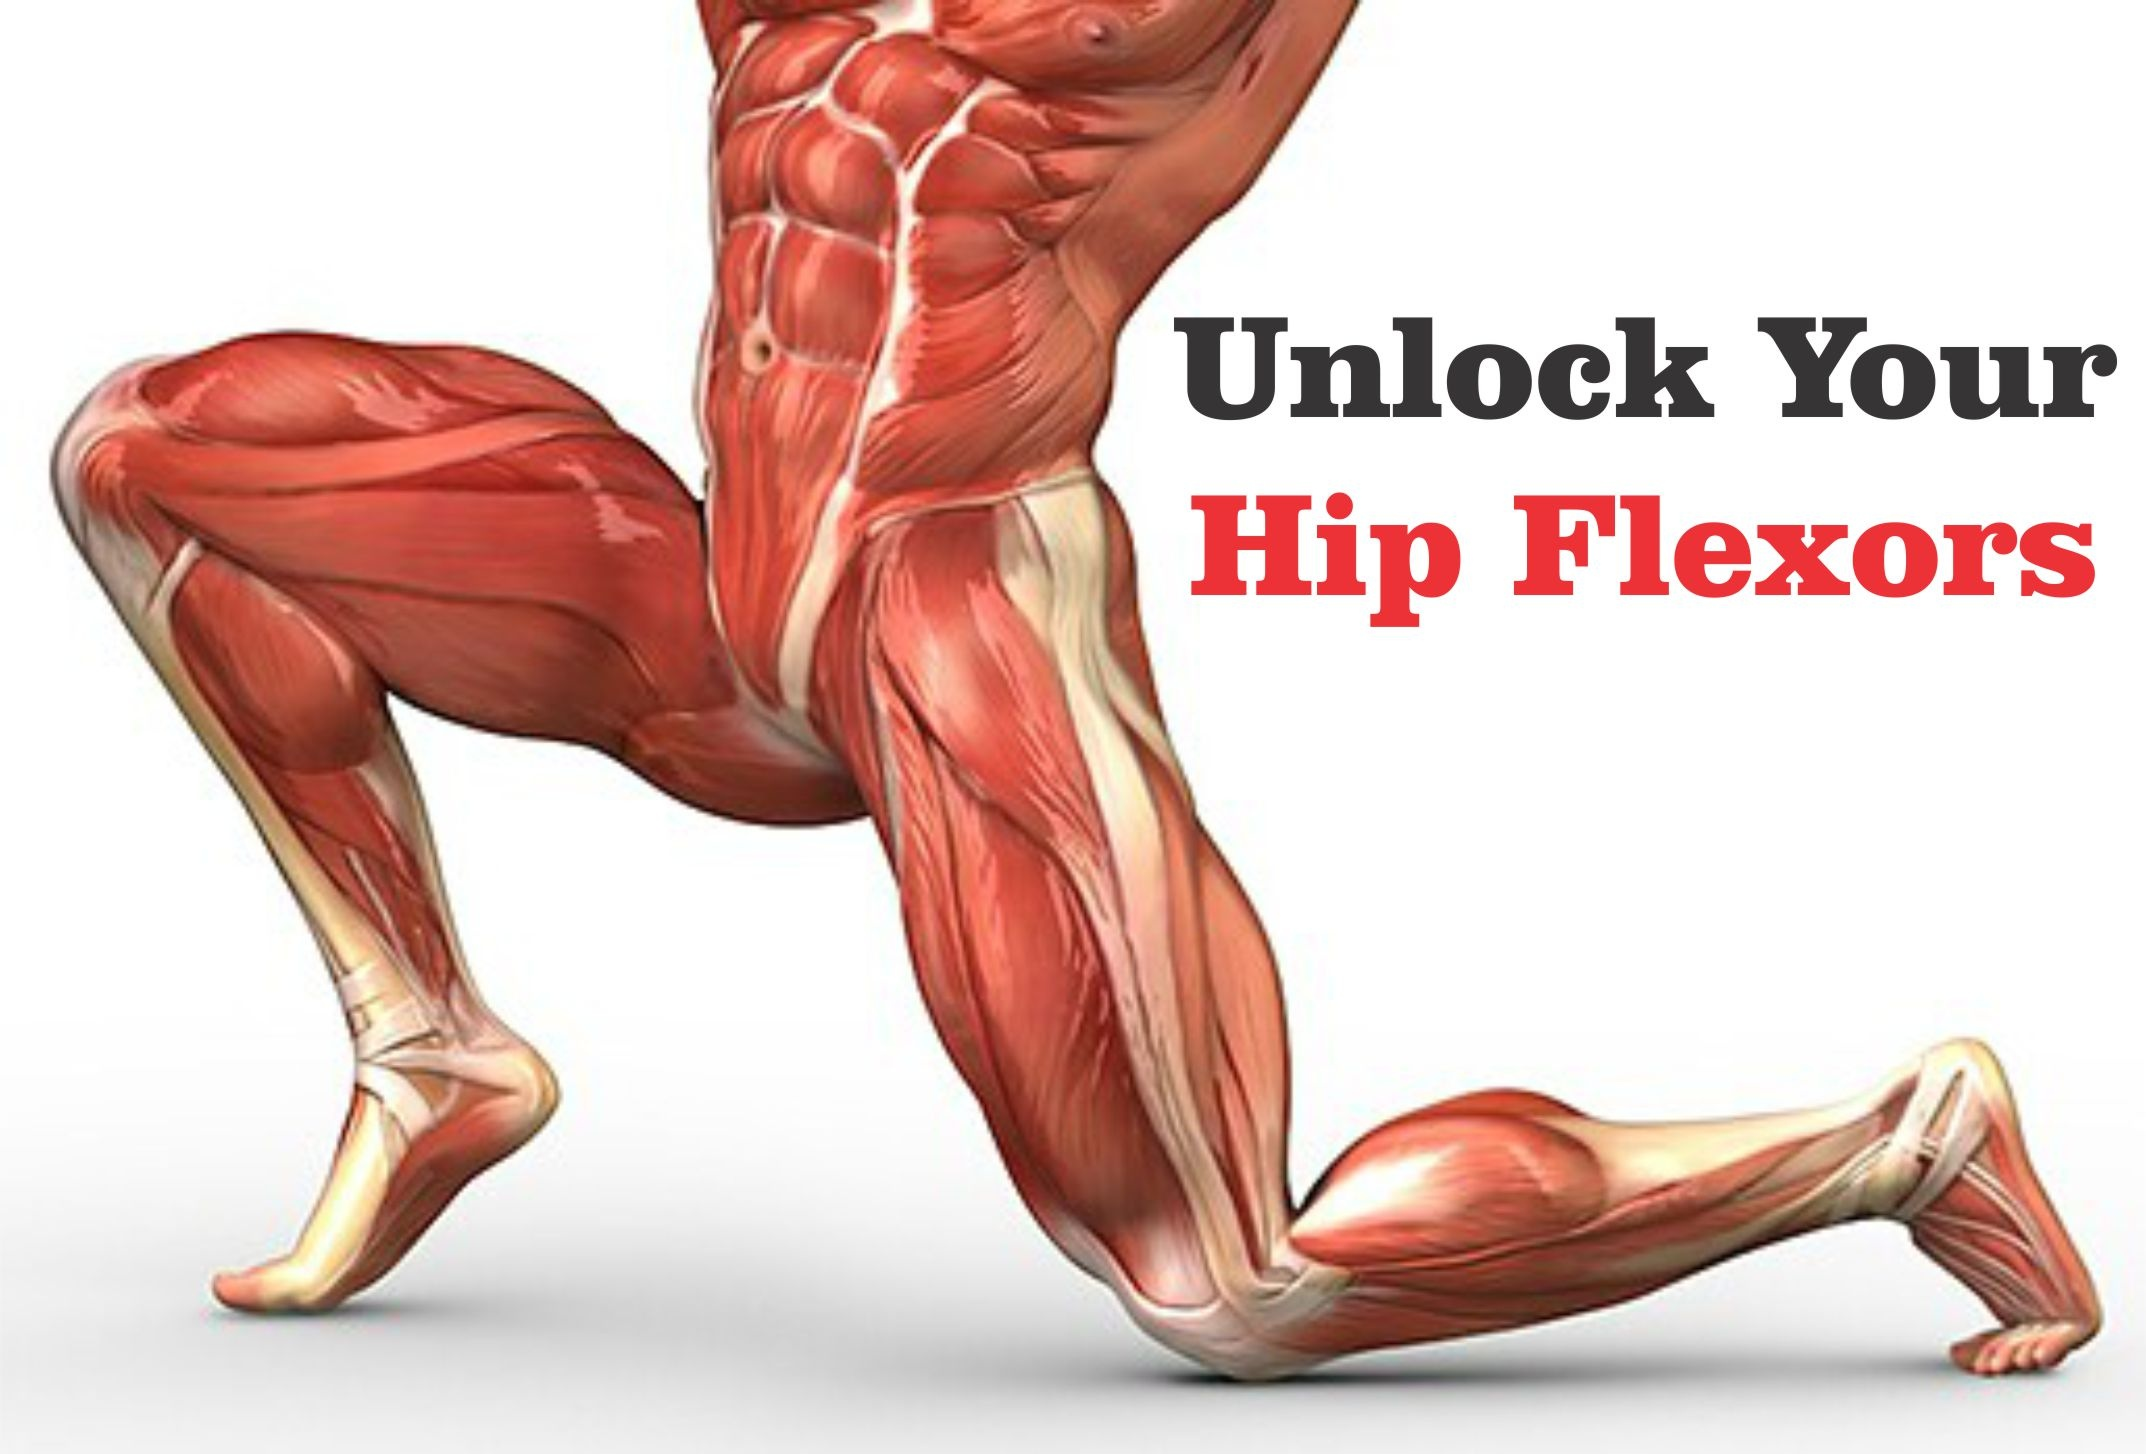 Hip Flexors Tight From Spinning